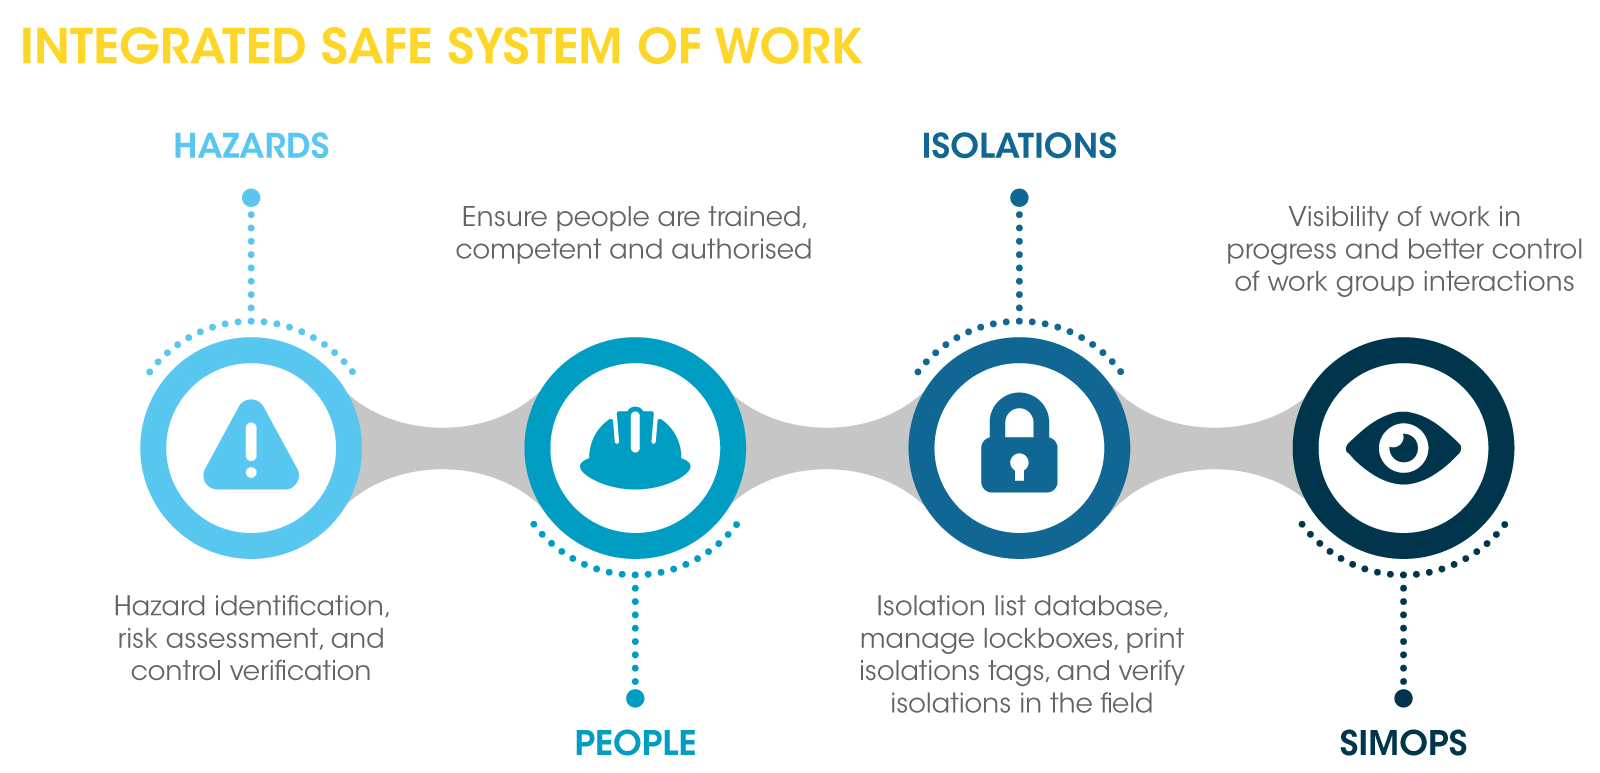 Integrated safe system of work